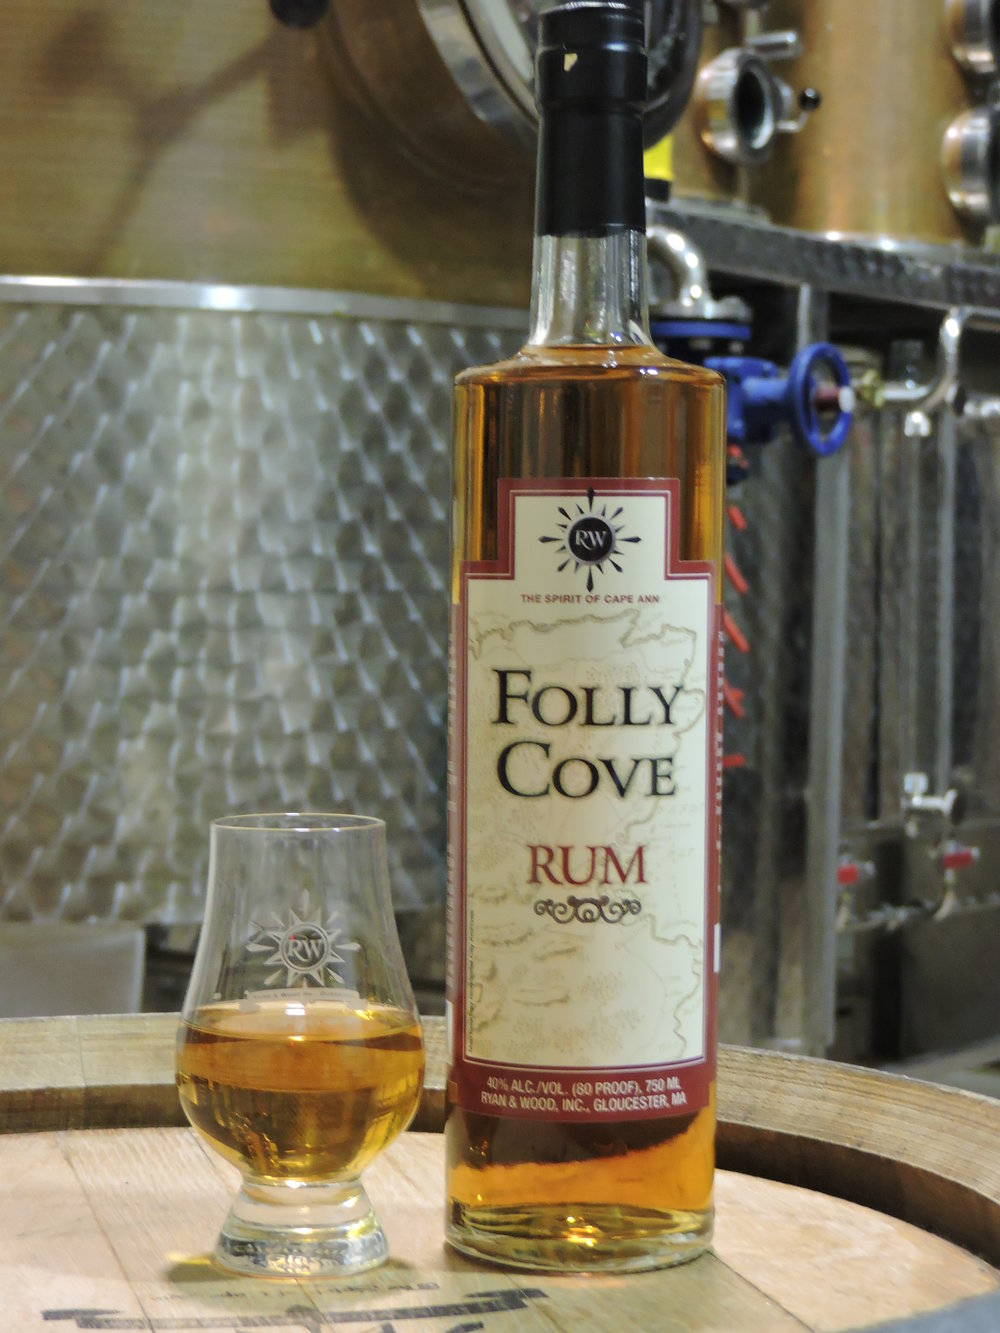 folly cove rum bottle-1.jpg